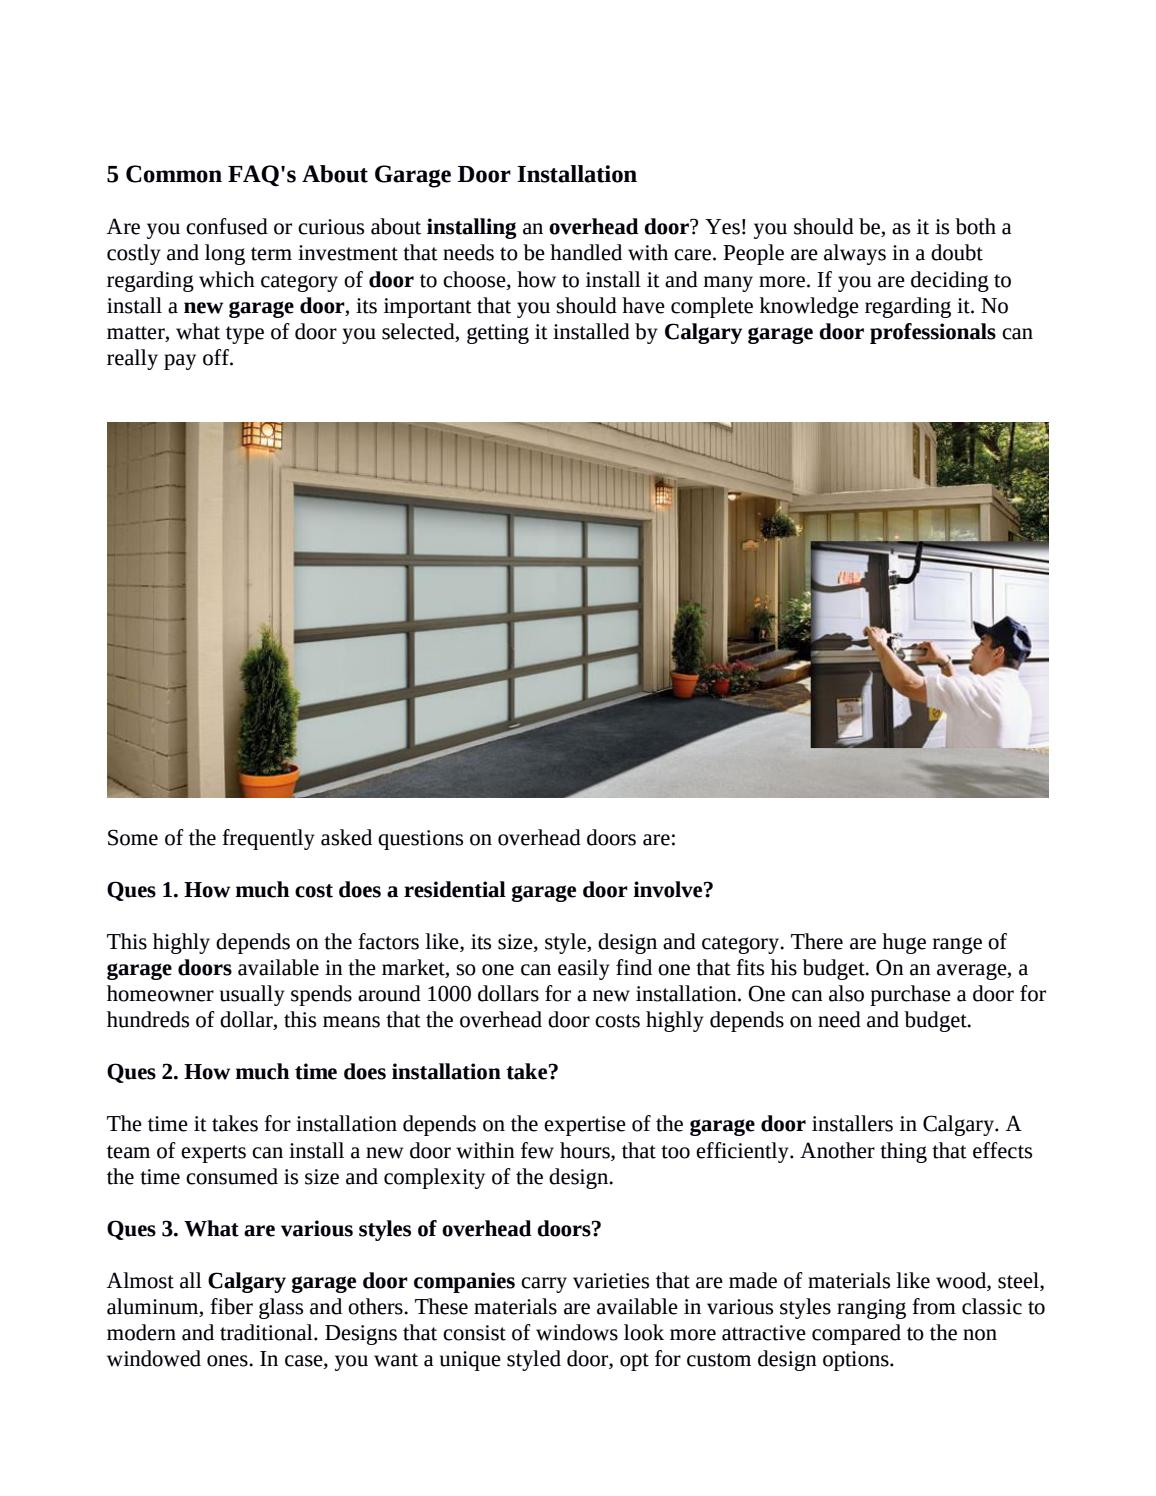 Tips To Install A New Garage Door In Calgary By